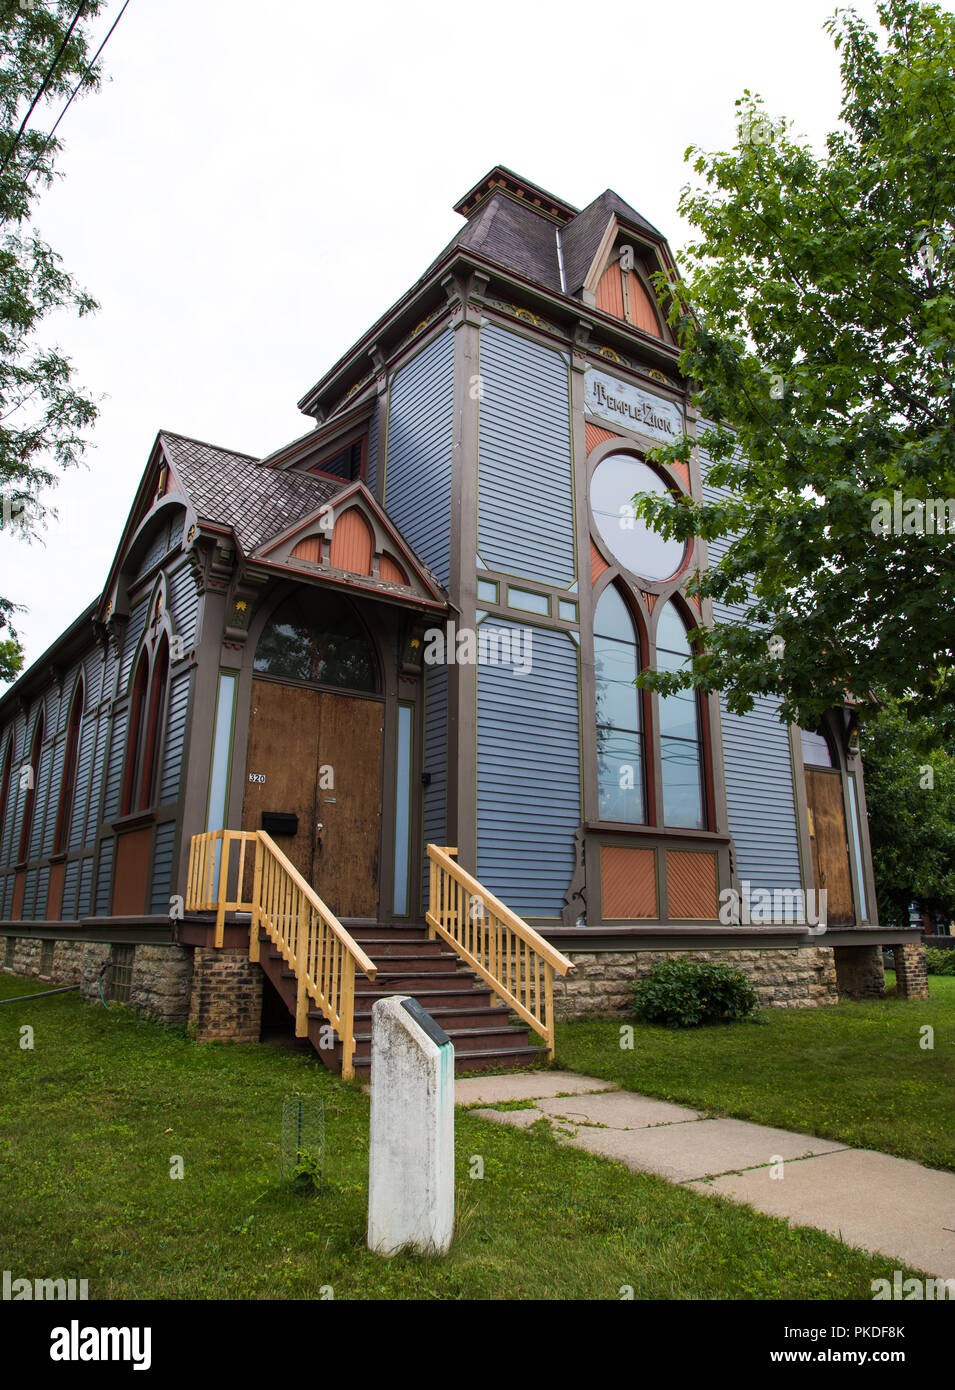 Temple Zion was the synagogue of Harry Houdini's father when they lived in Appleton, Wisconsin. Now privately owned it still has the sign. - Stock Image